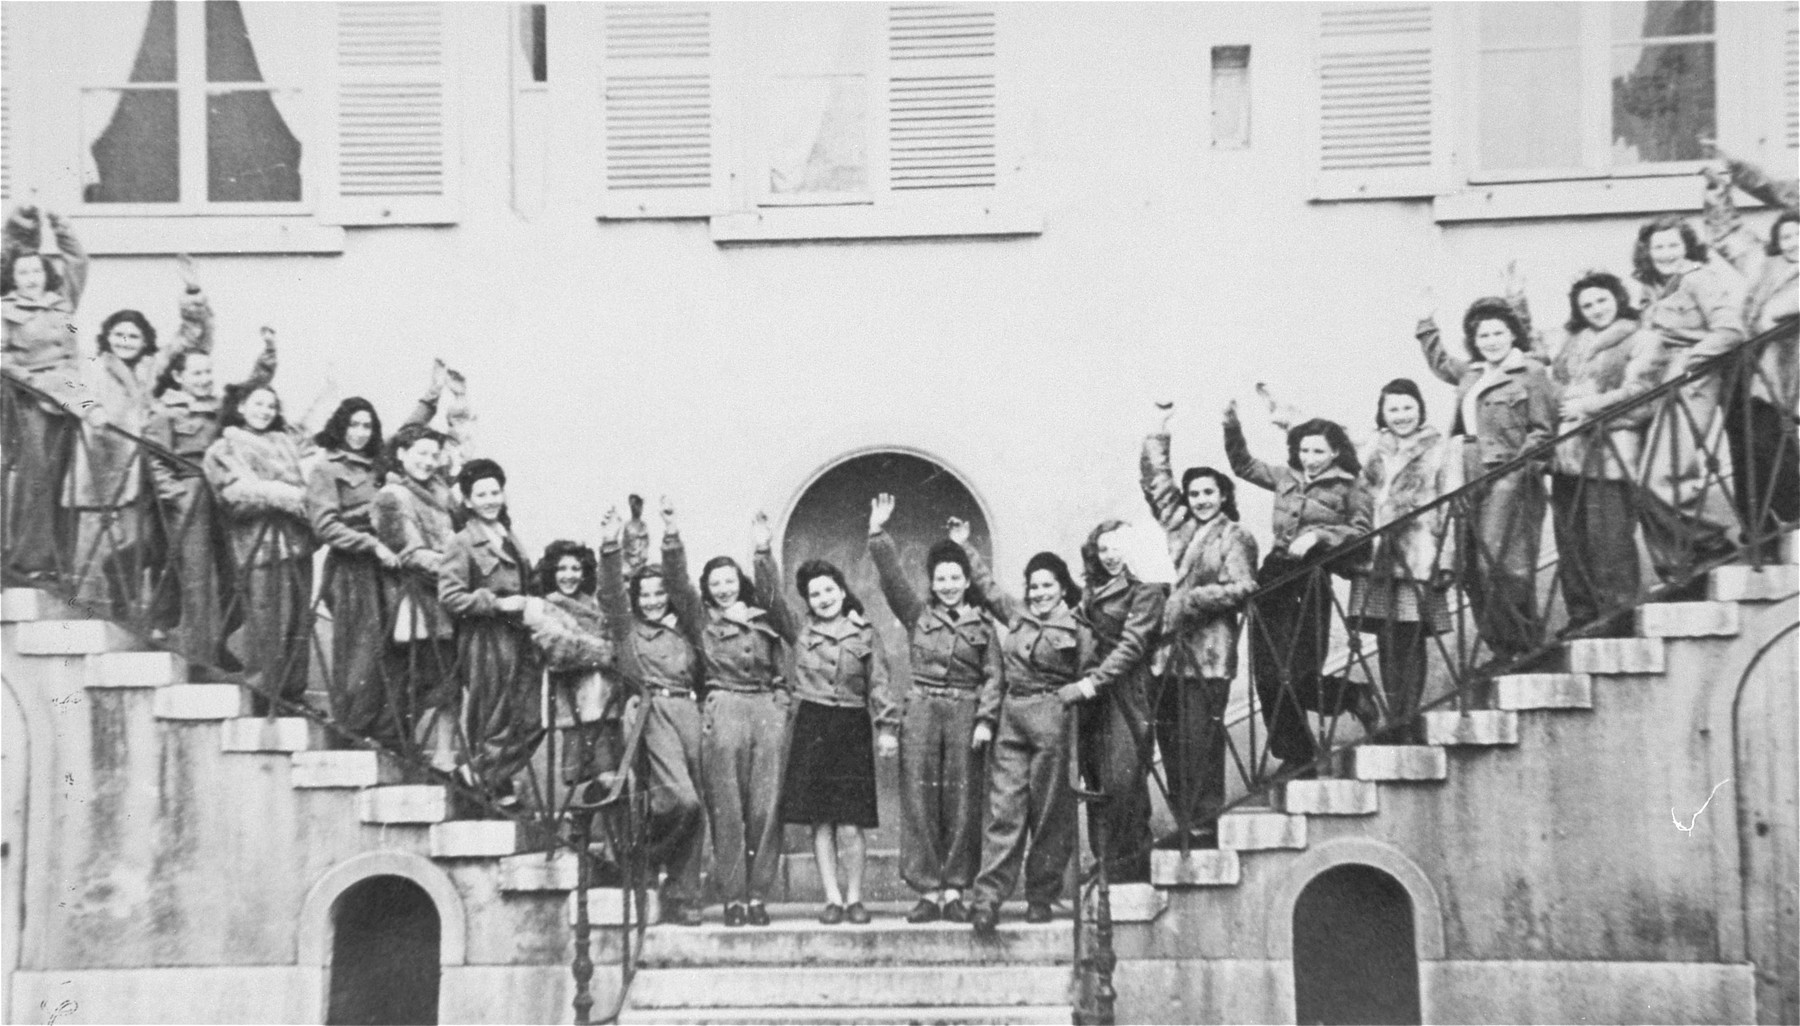 Young Jewish women living at the Le Tremplin children's home pose waving on the front staircase.